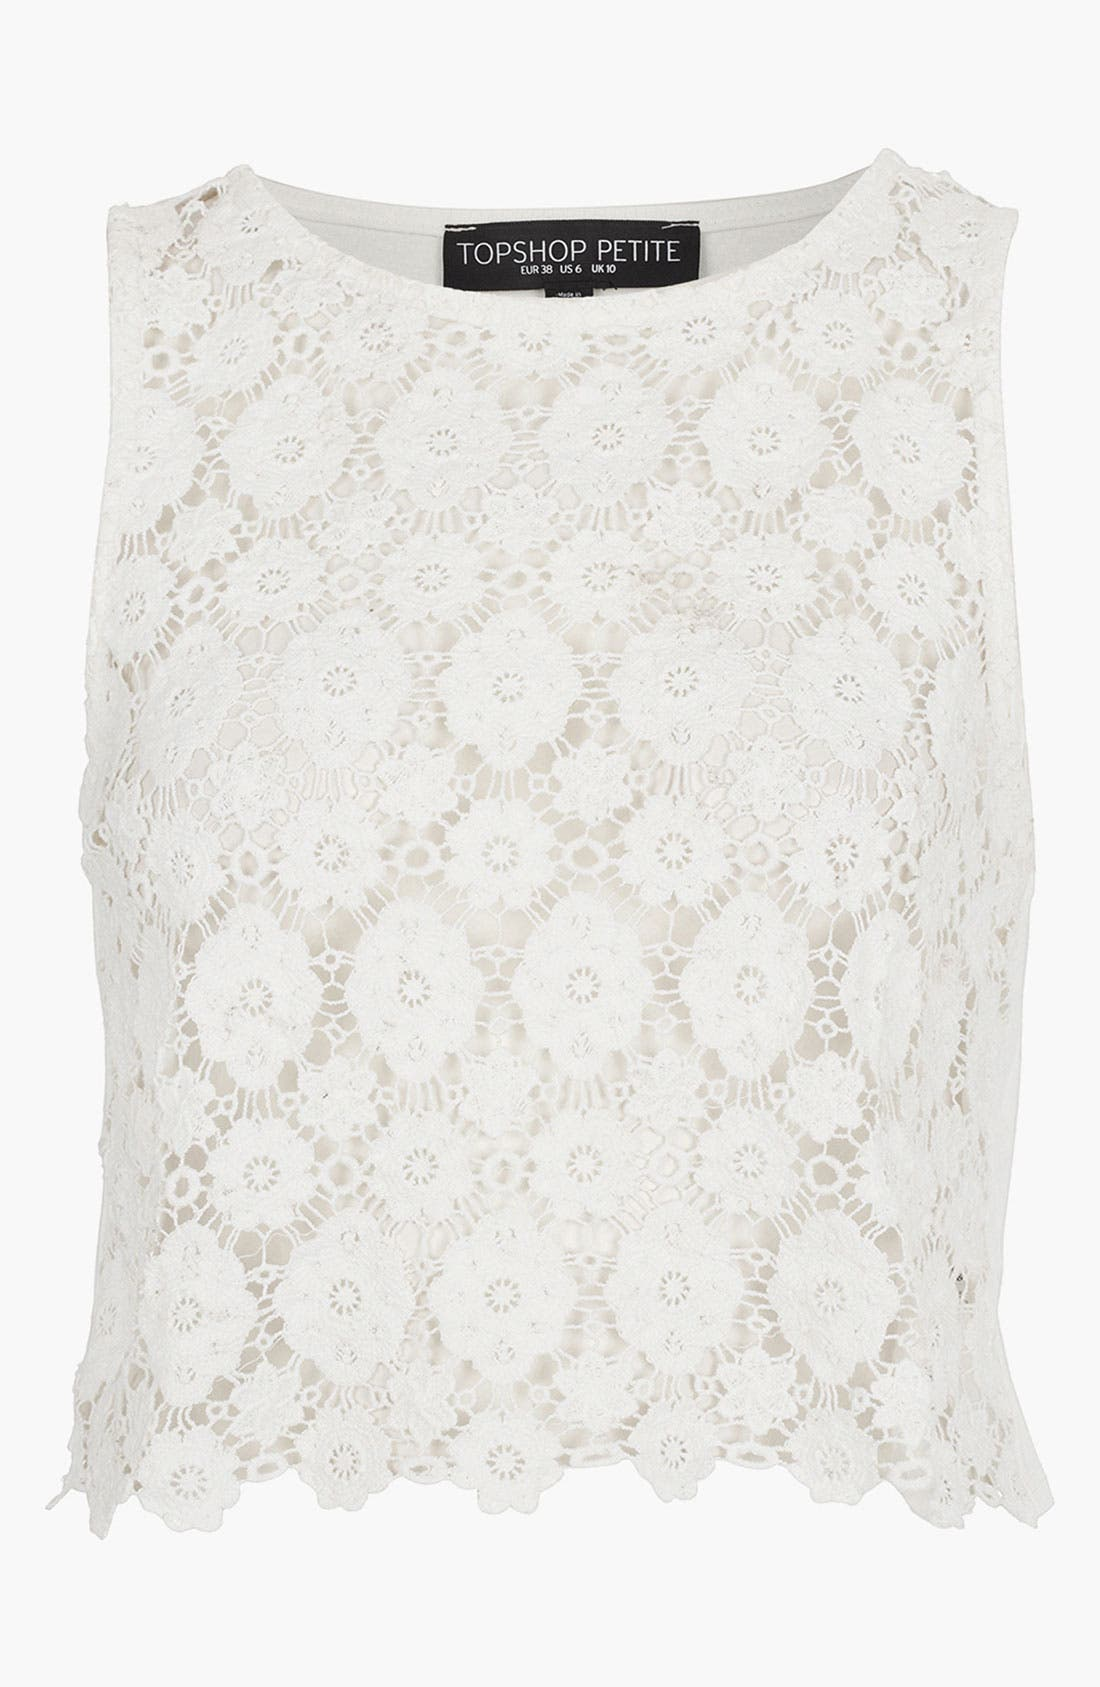 Alternate Image 1 Selected - Topshop Crop Doily Lace Top (Petite)